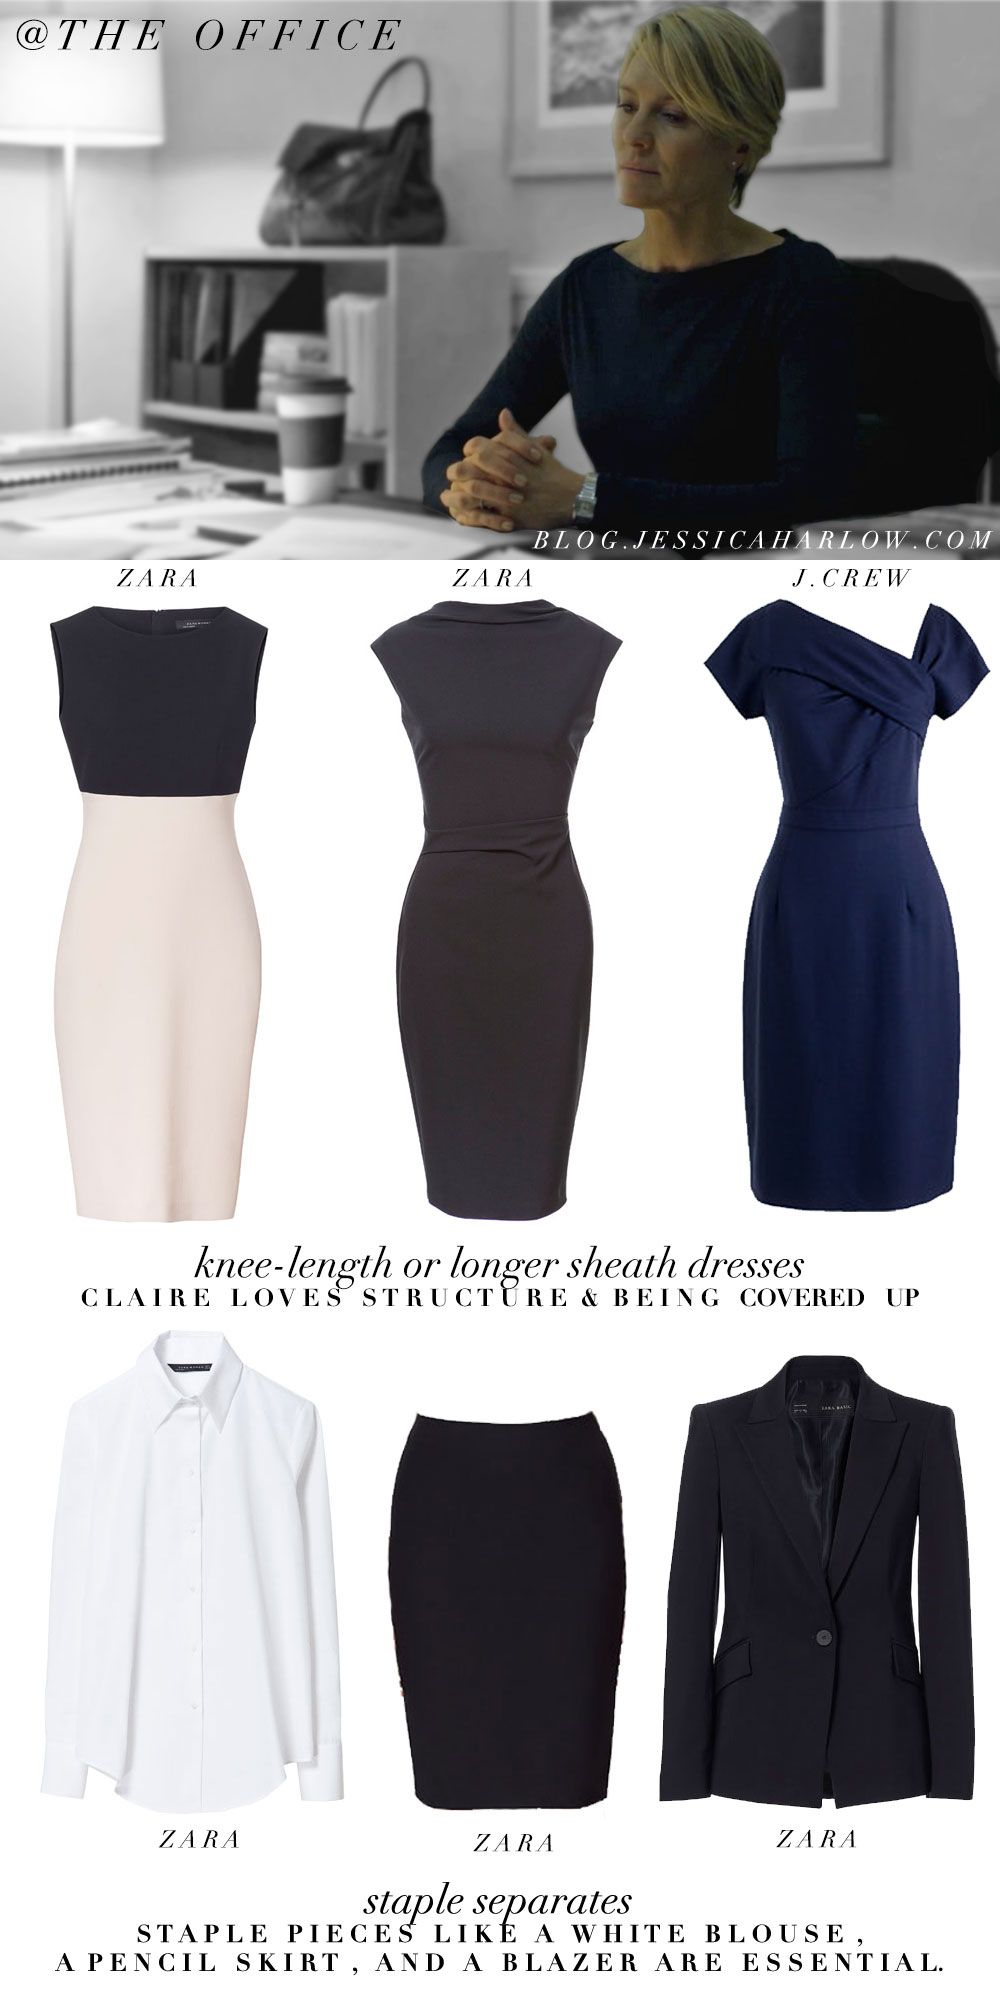 Claire Underwood House Of Cards Work Wardrobe Outfit Clothing Style